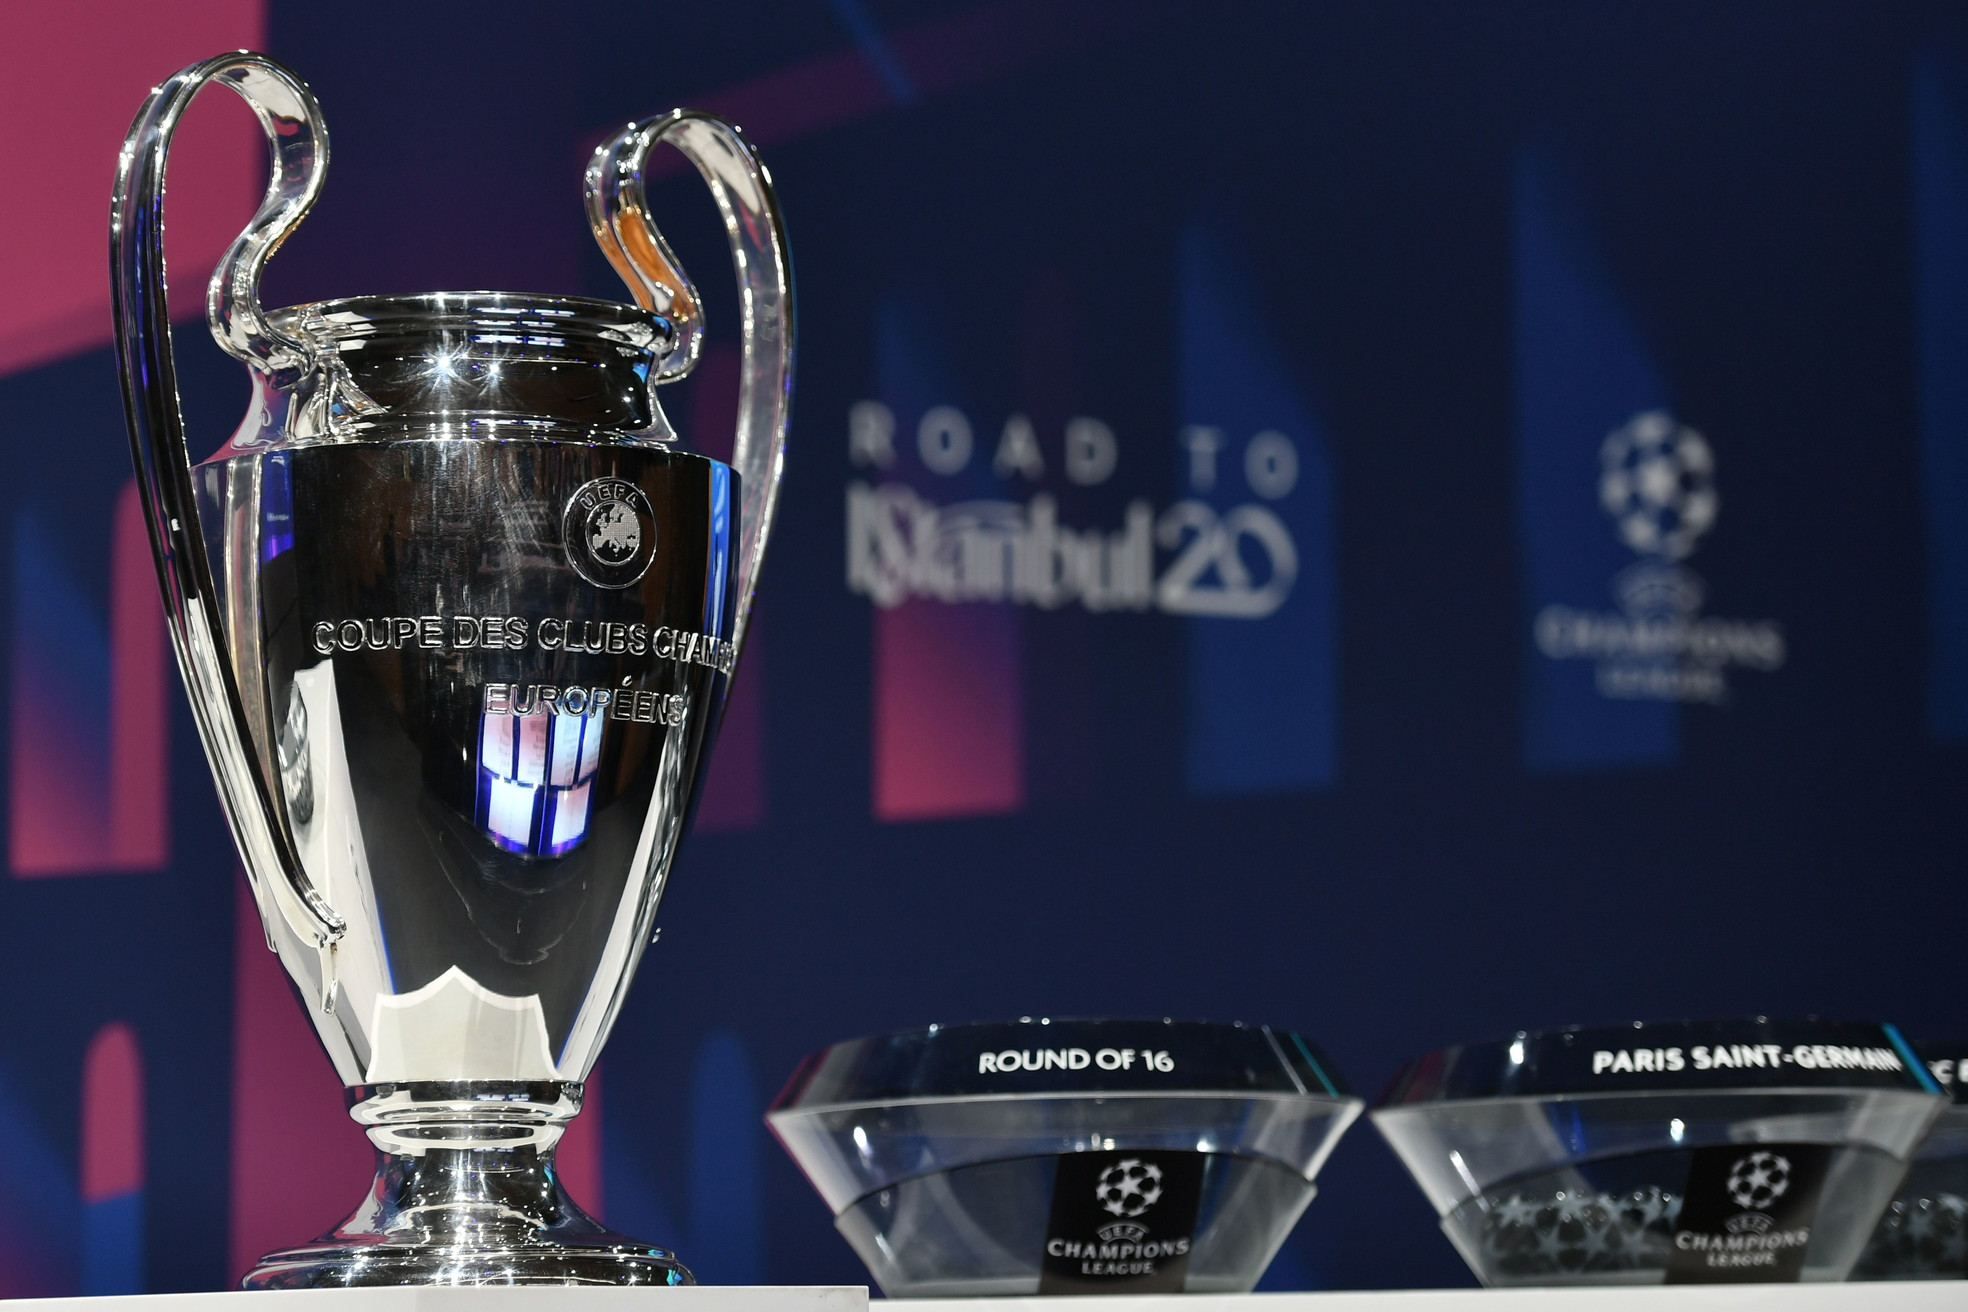 Coppe europee 2021/22: le qualificate a Champions, Europa ...